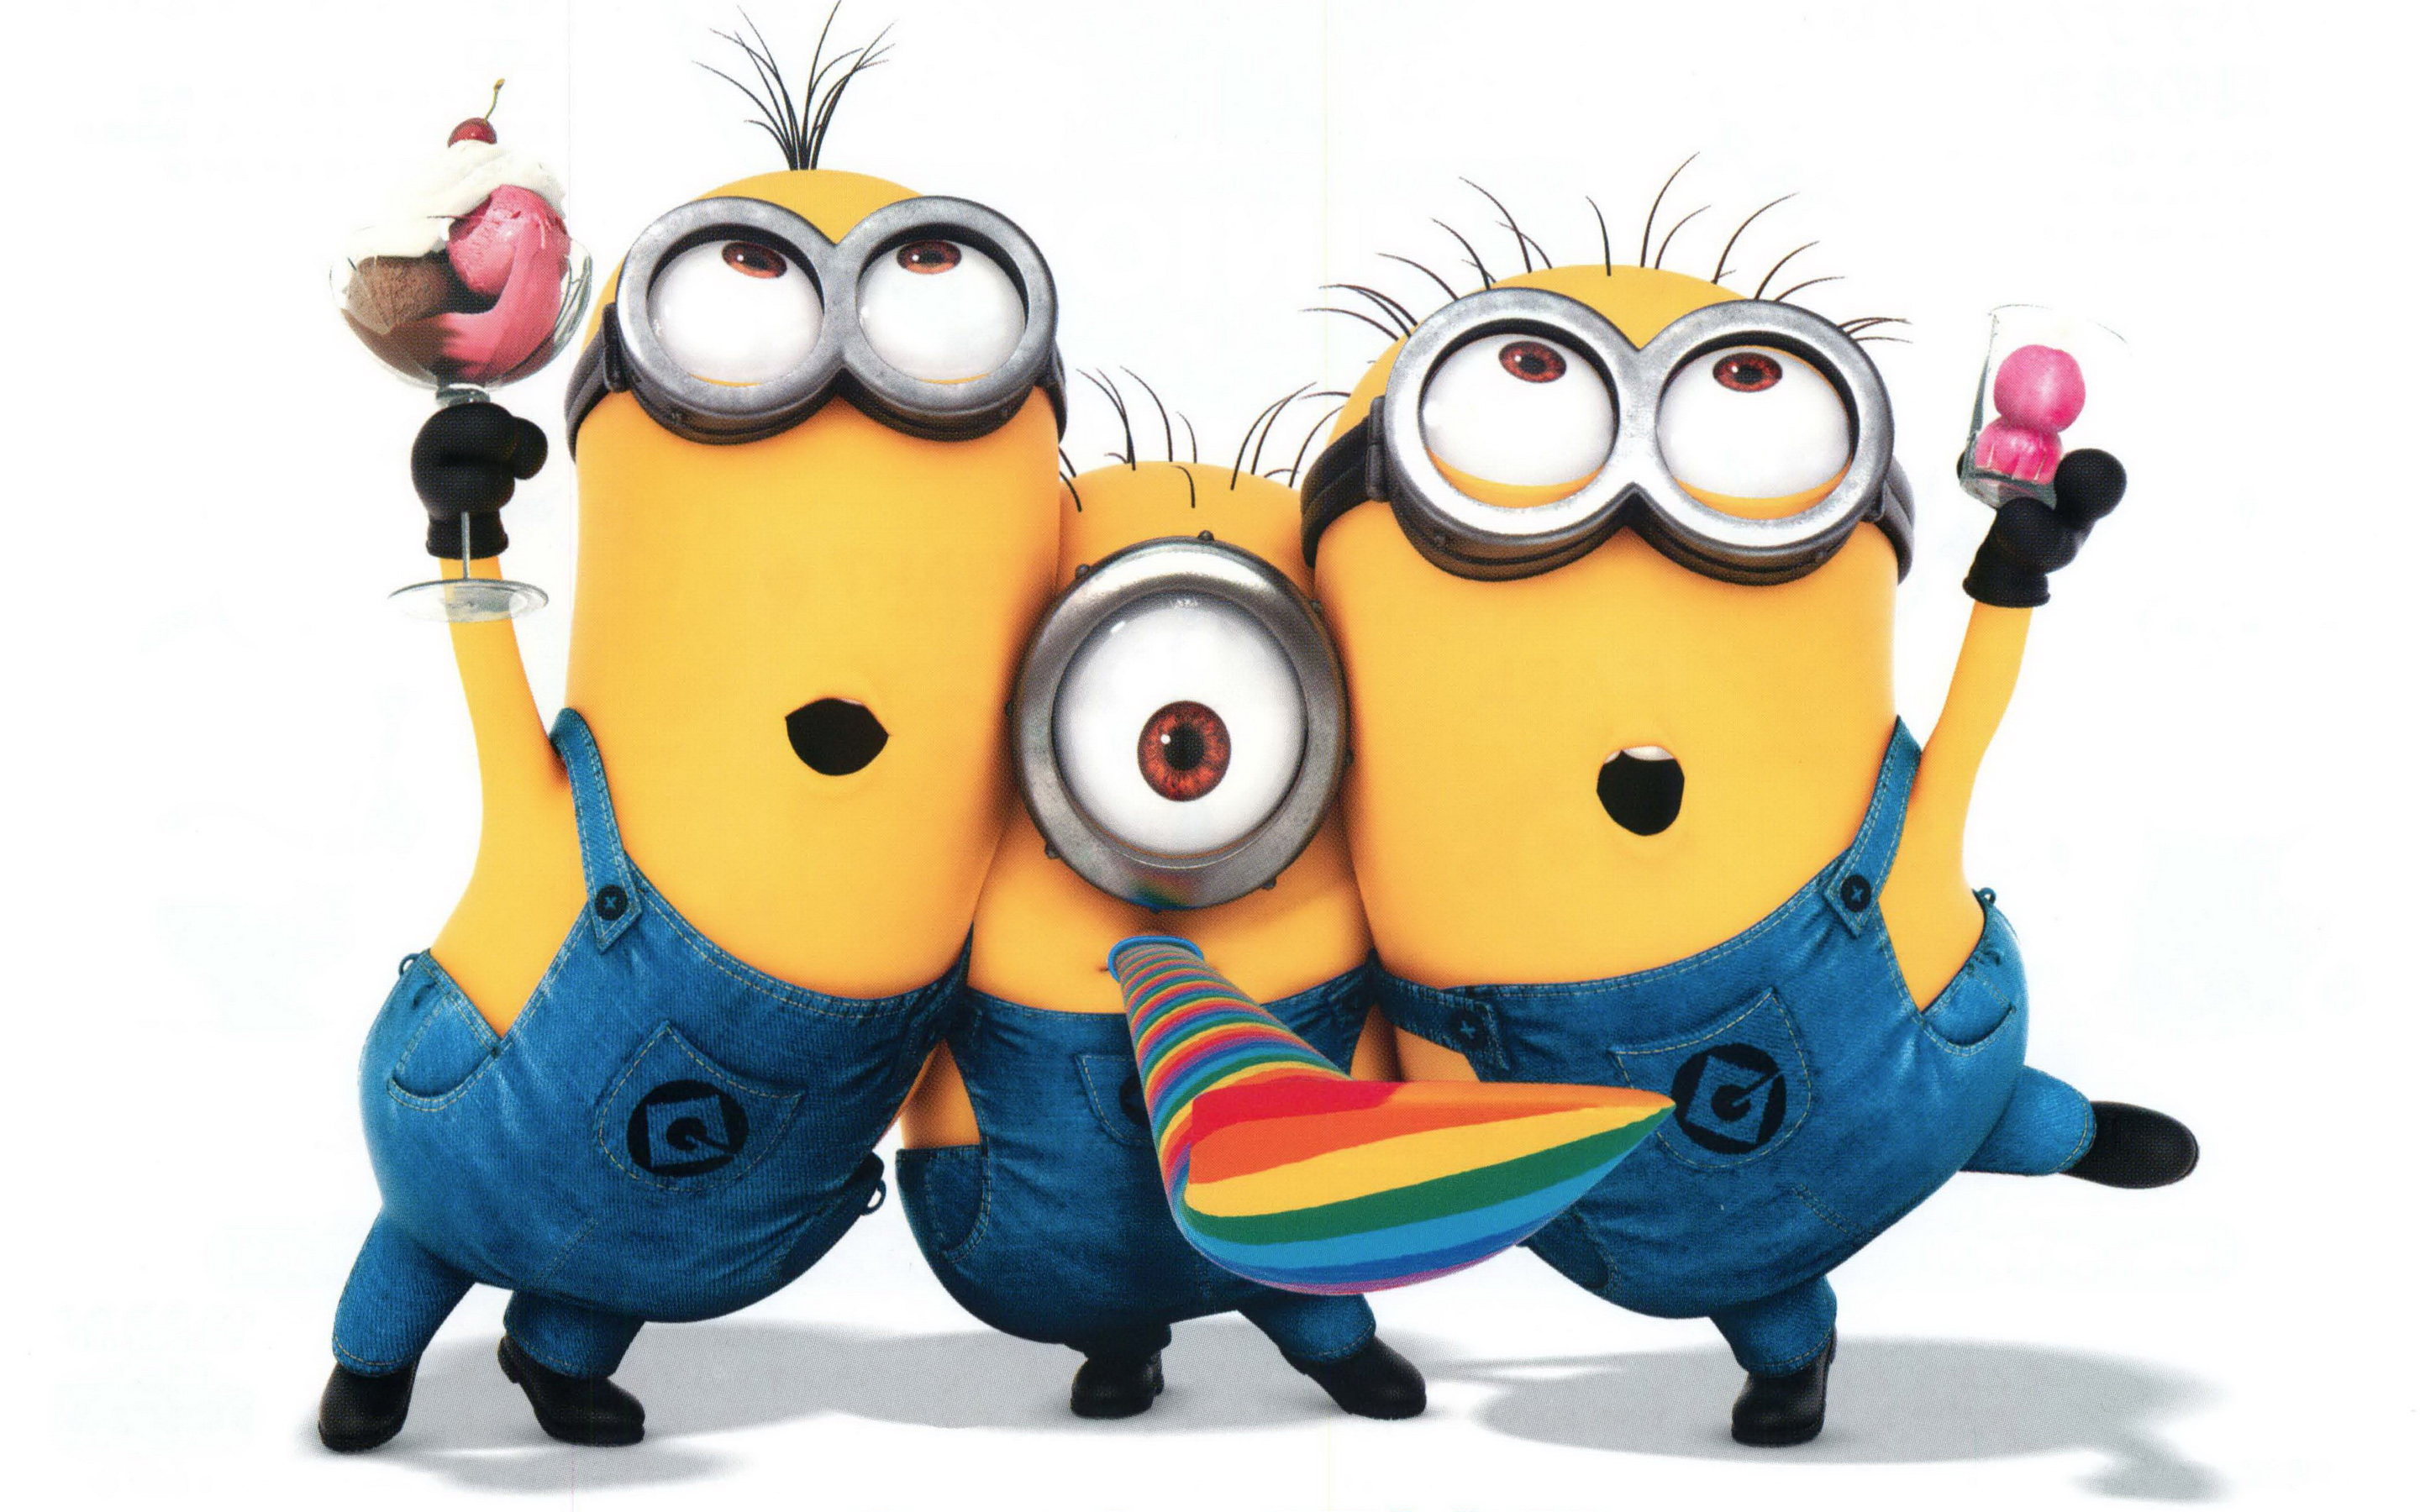 despicable_me_2_minions-wide.jpg